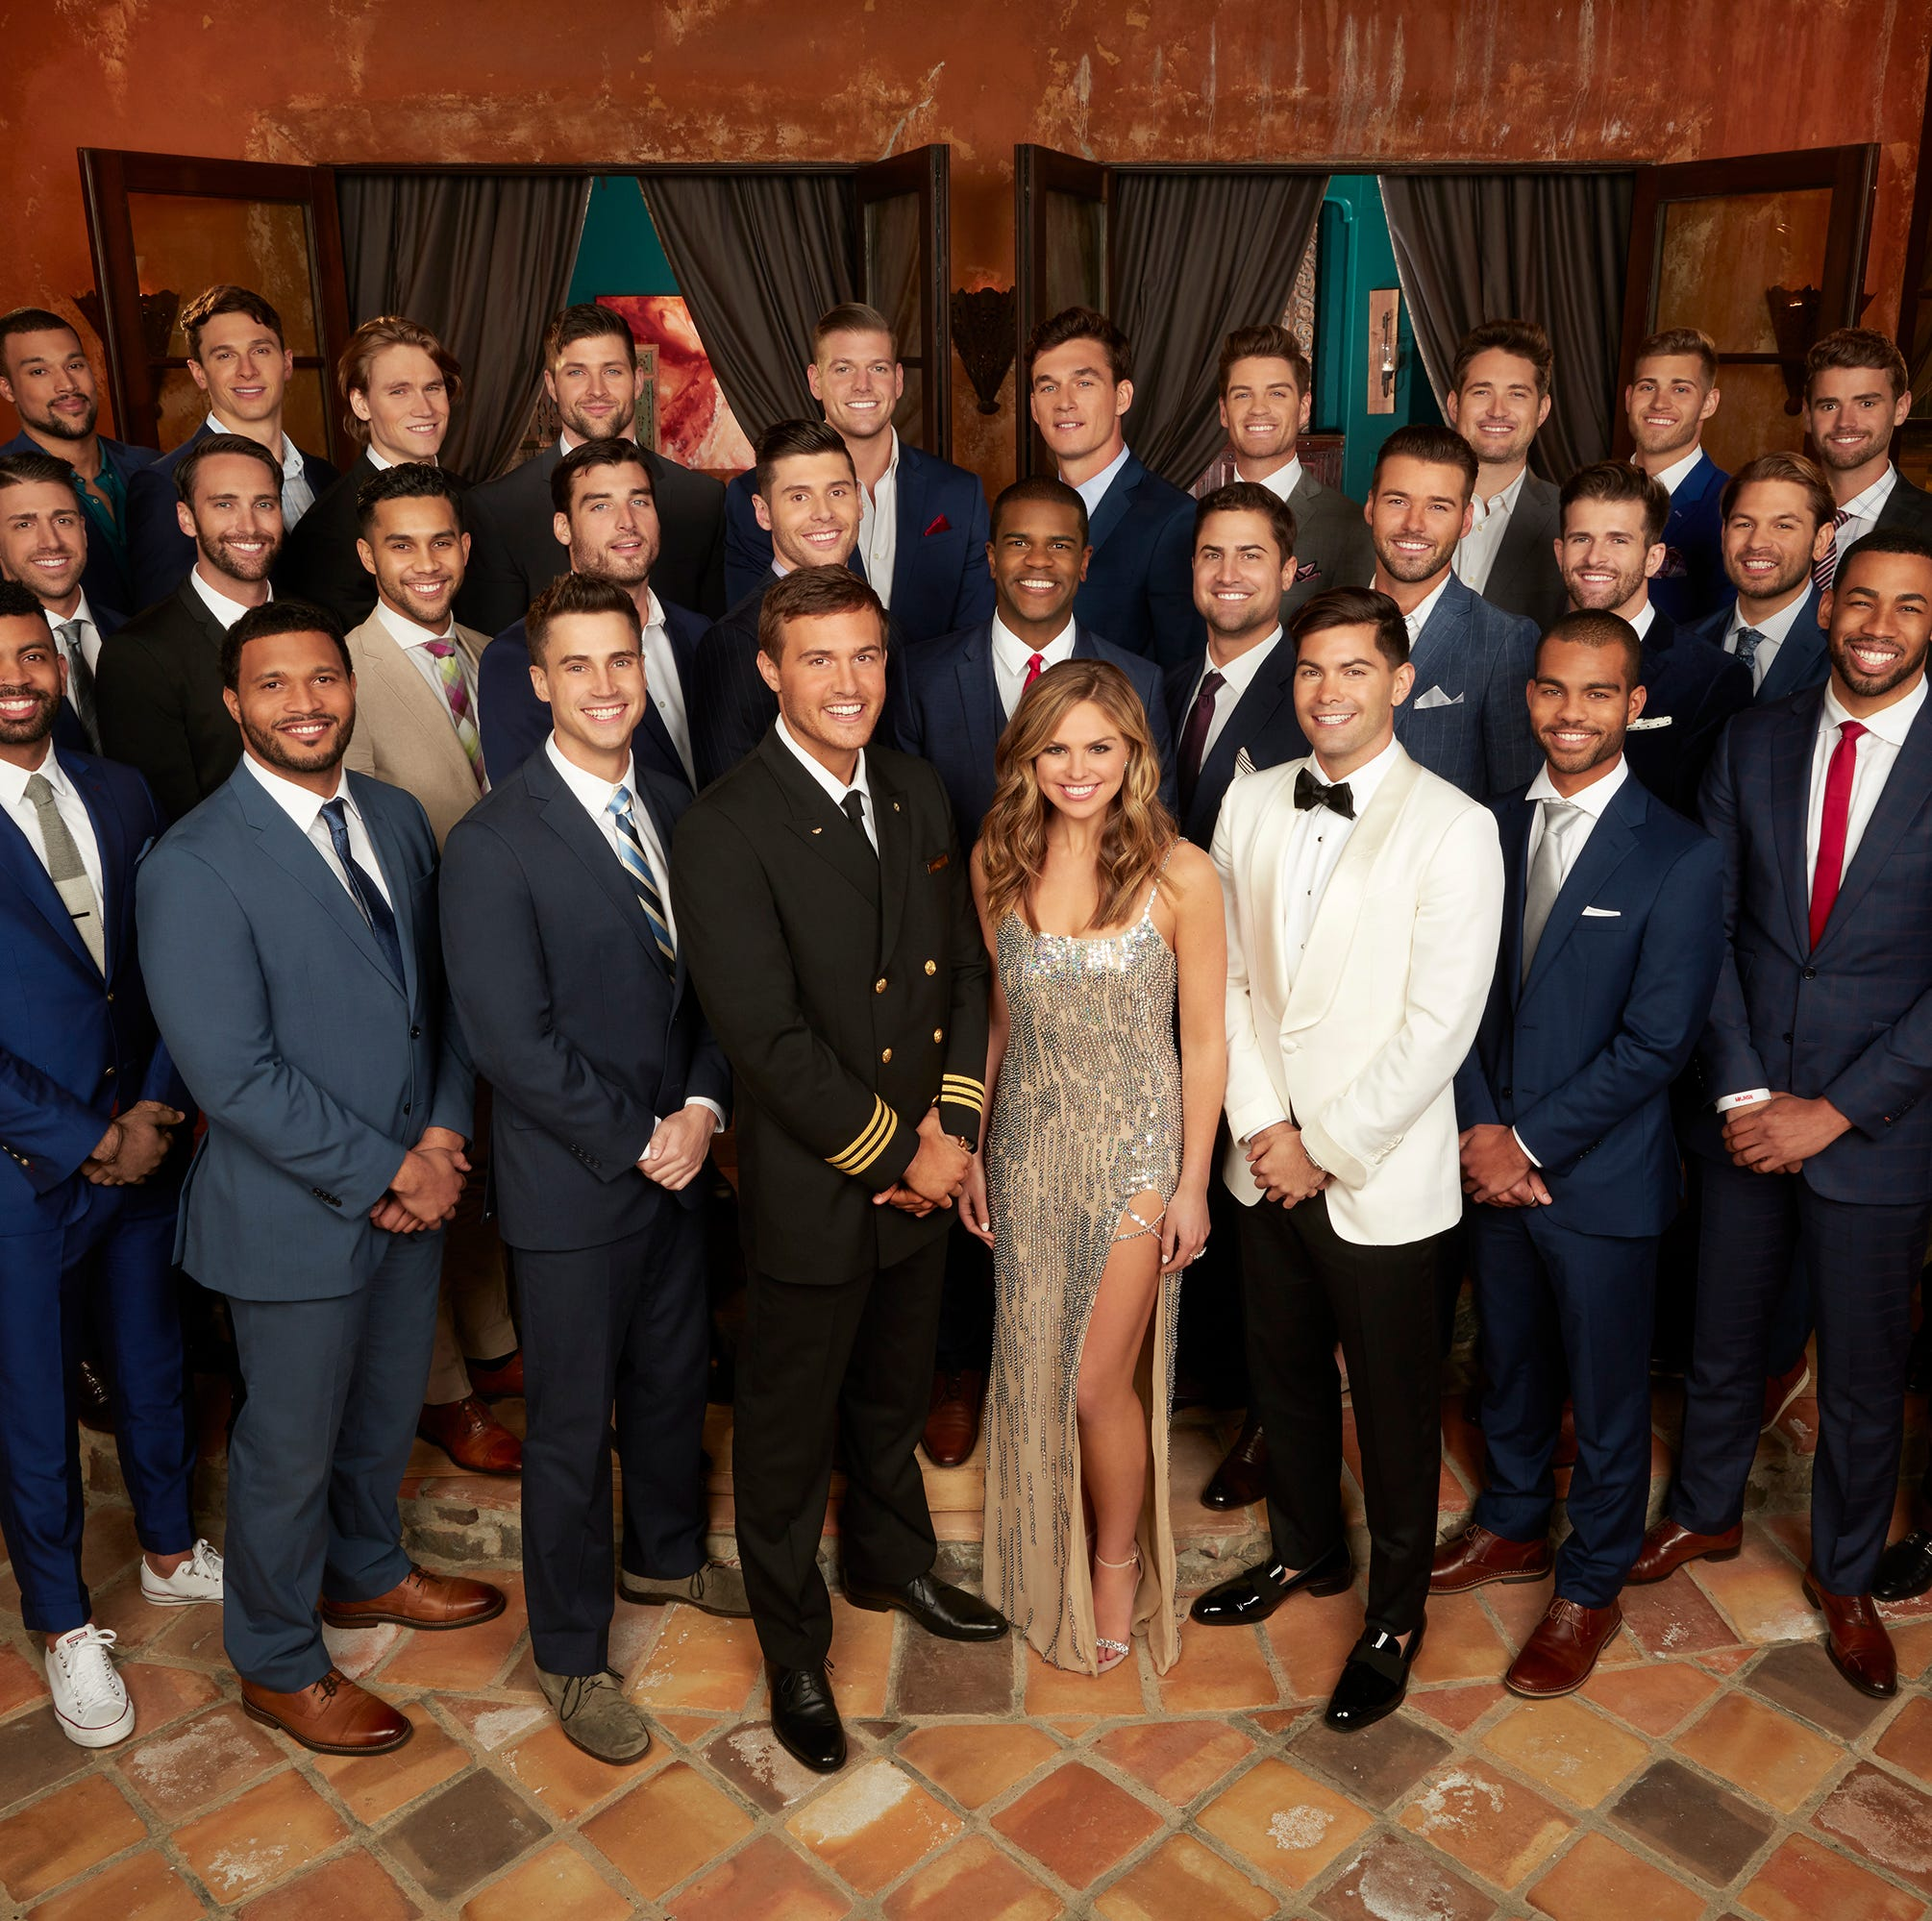 SPOILER ALERT: An update on the Kentucky men on 'The Bachelorette' after the first episode